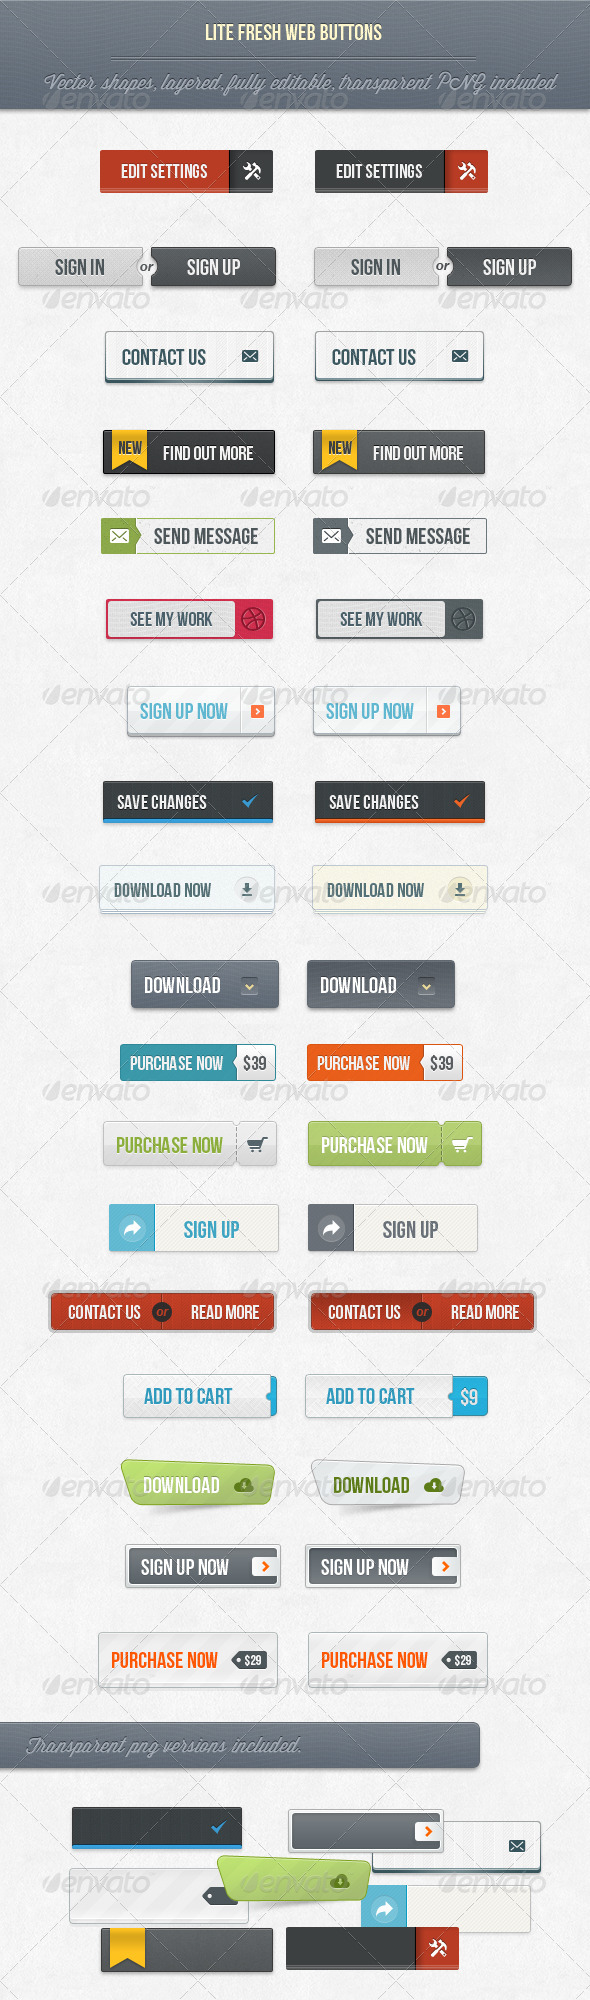 18 Lite Fresh Web Buttons - Buttons Web Elements